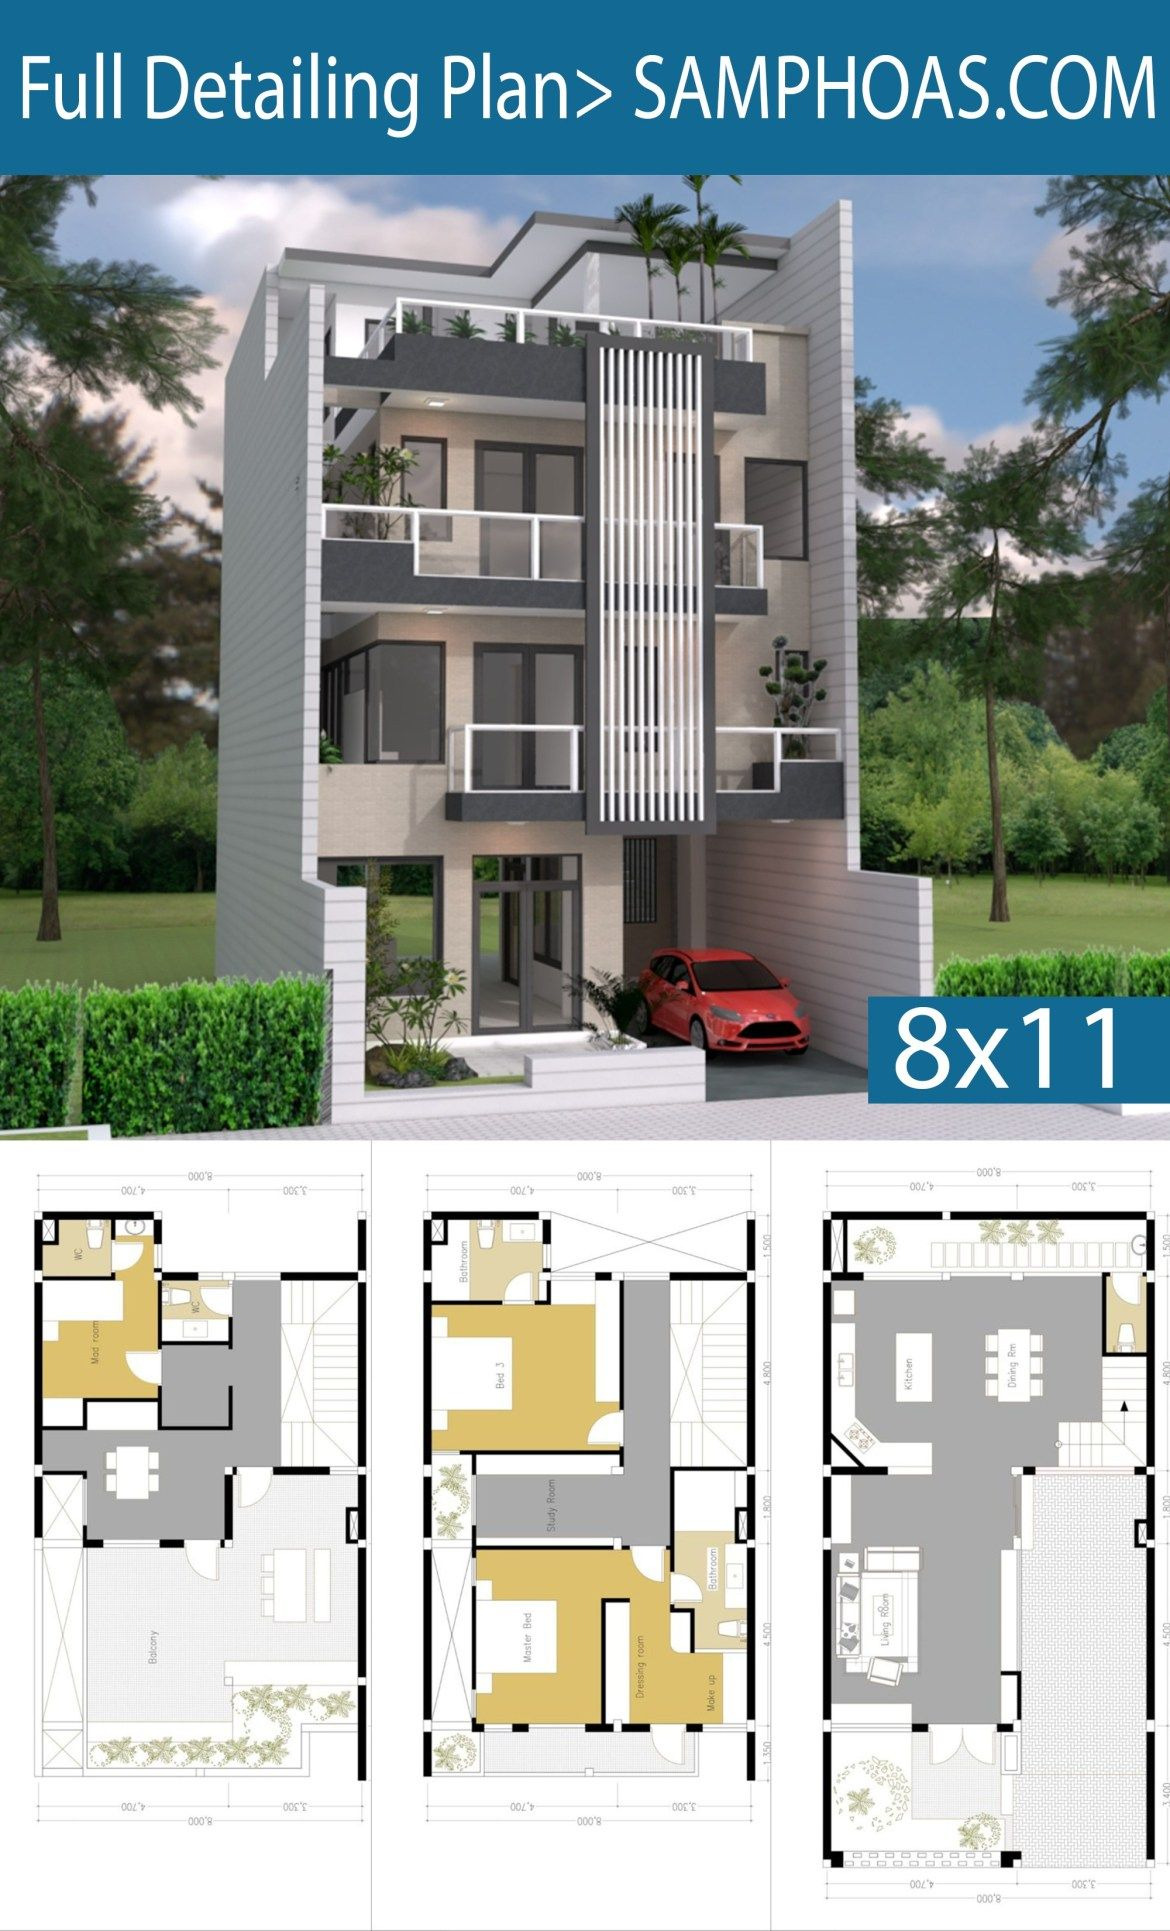 Model House Design Pictures Awesome Sketchup House Plan 8x11m 4 Story Plan with 5 Bedroom